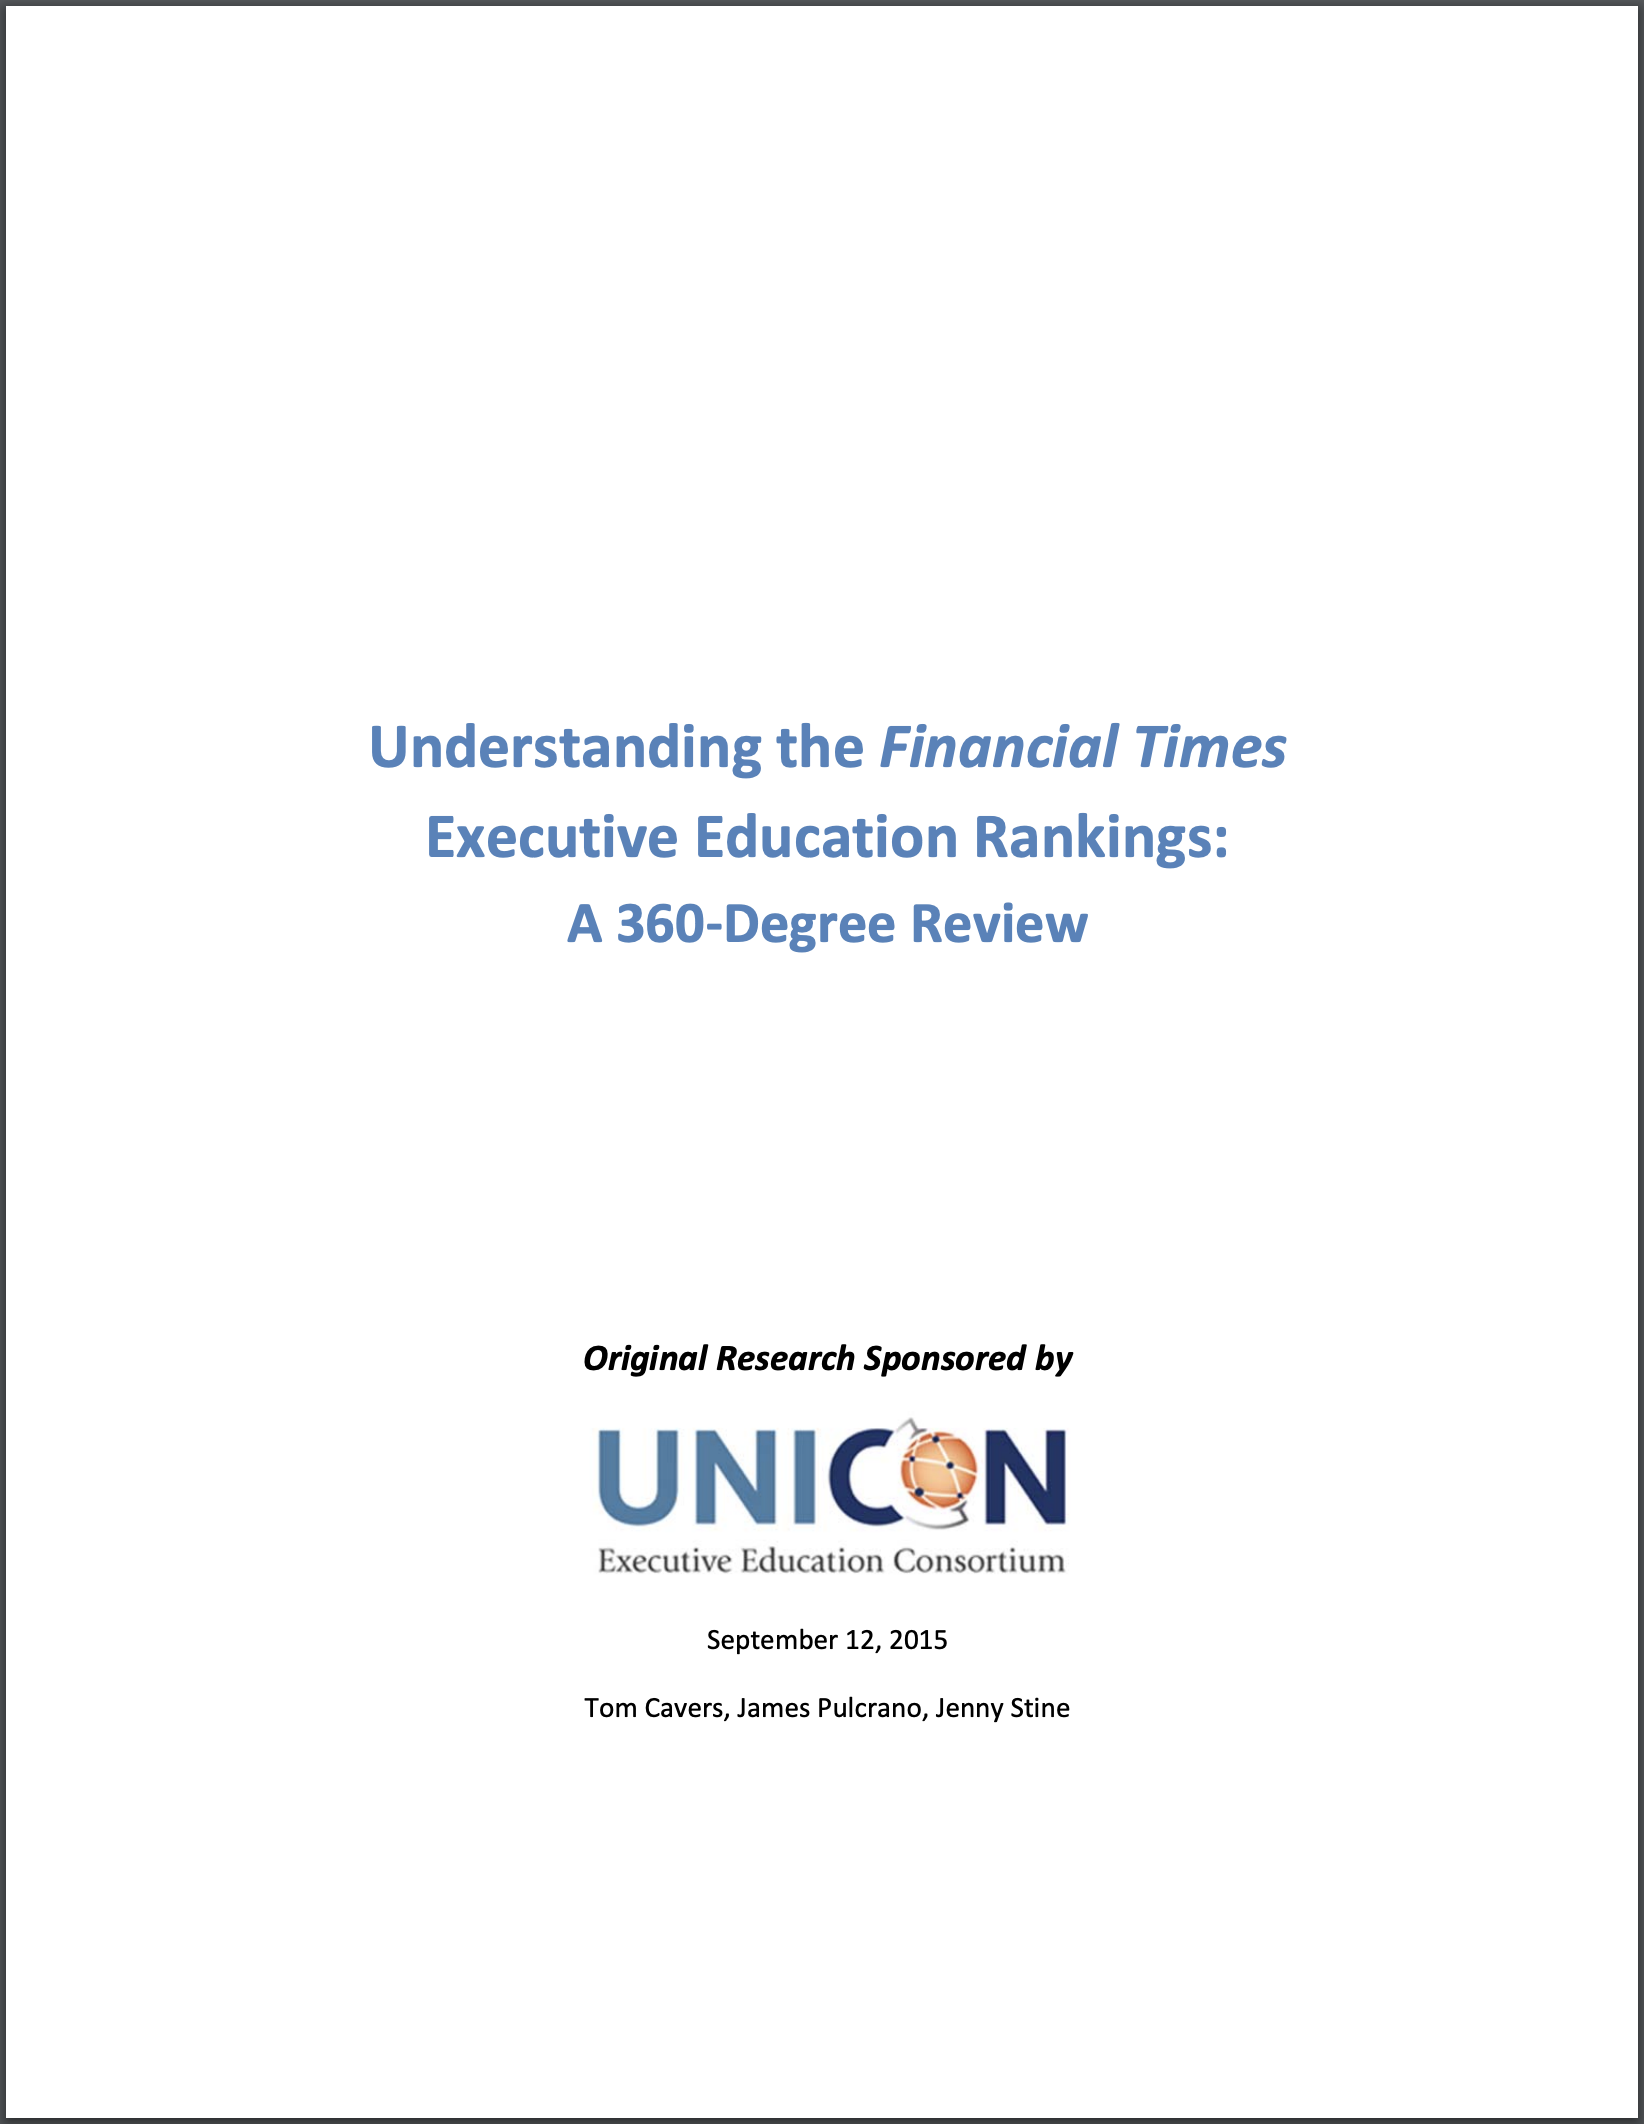 Understanding the Financial Times Executive Education Rankings: A 360-Degree Review . September, 2015